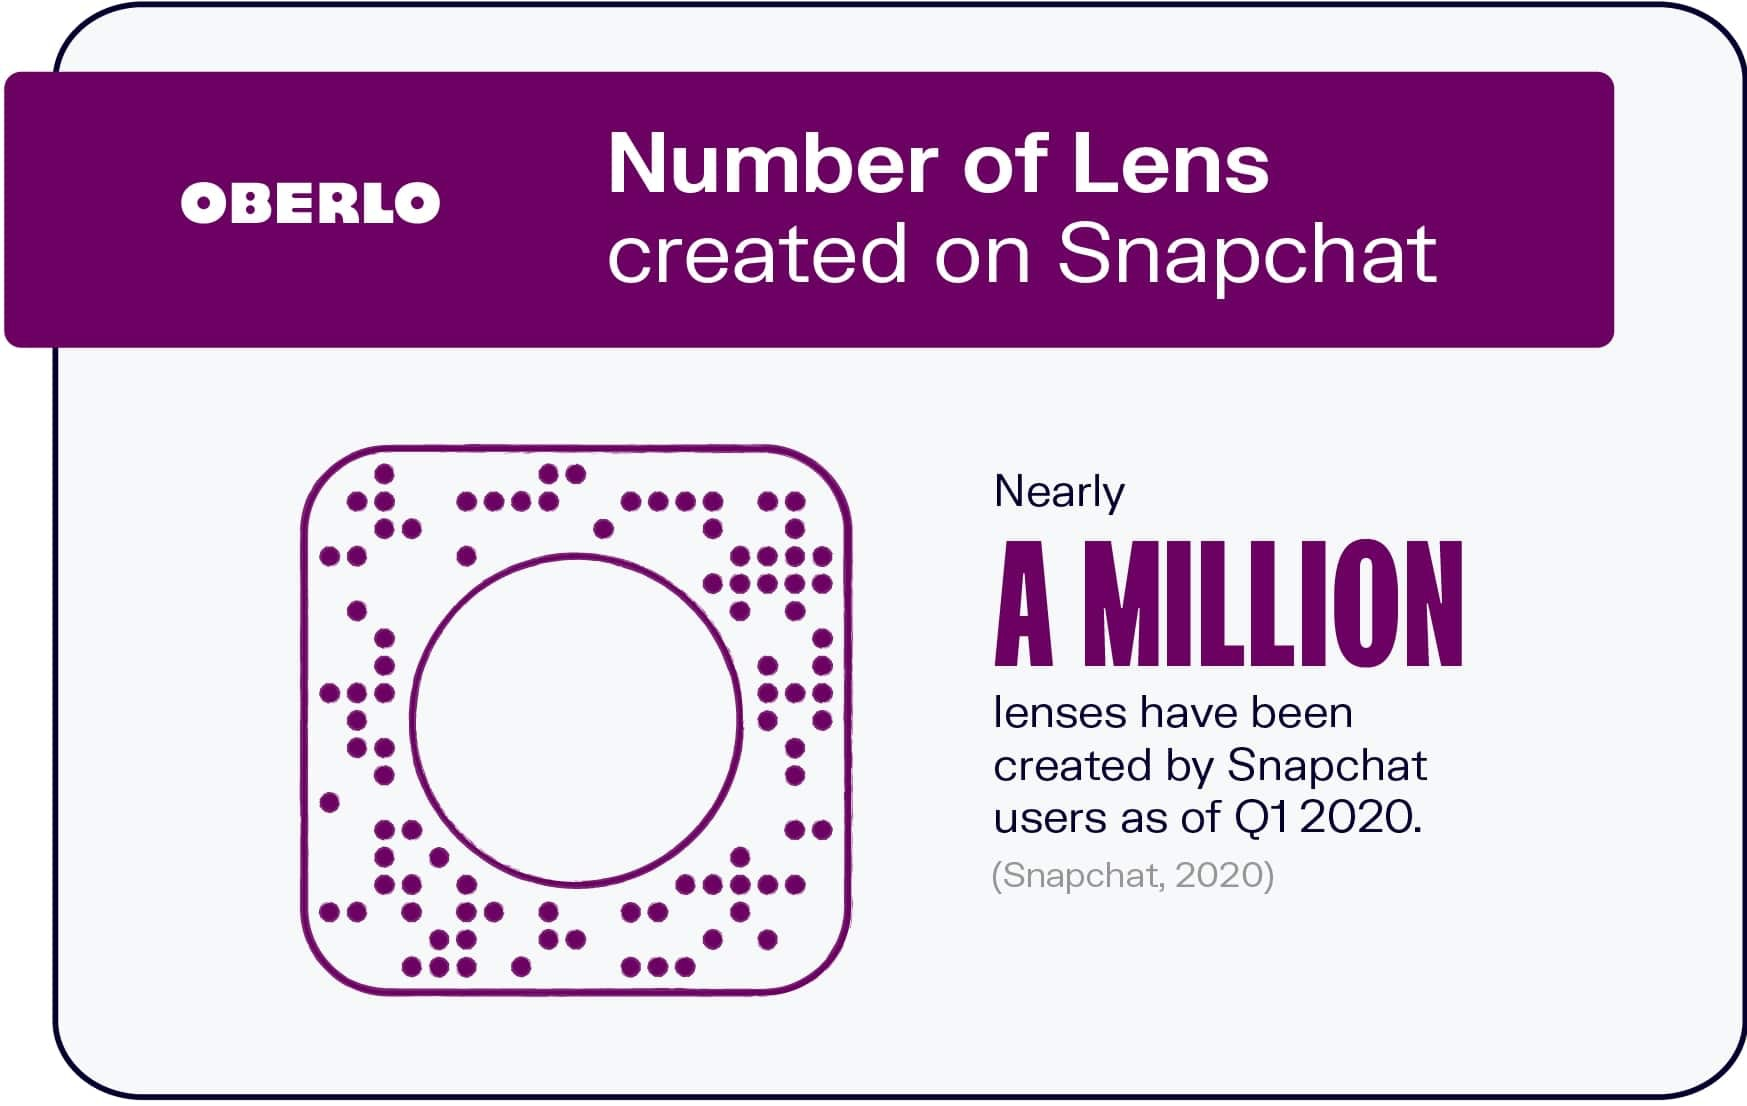 Number of Lenses Created on Snapchat